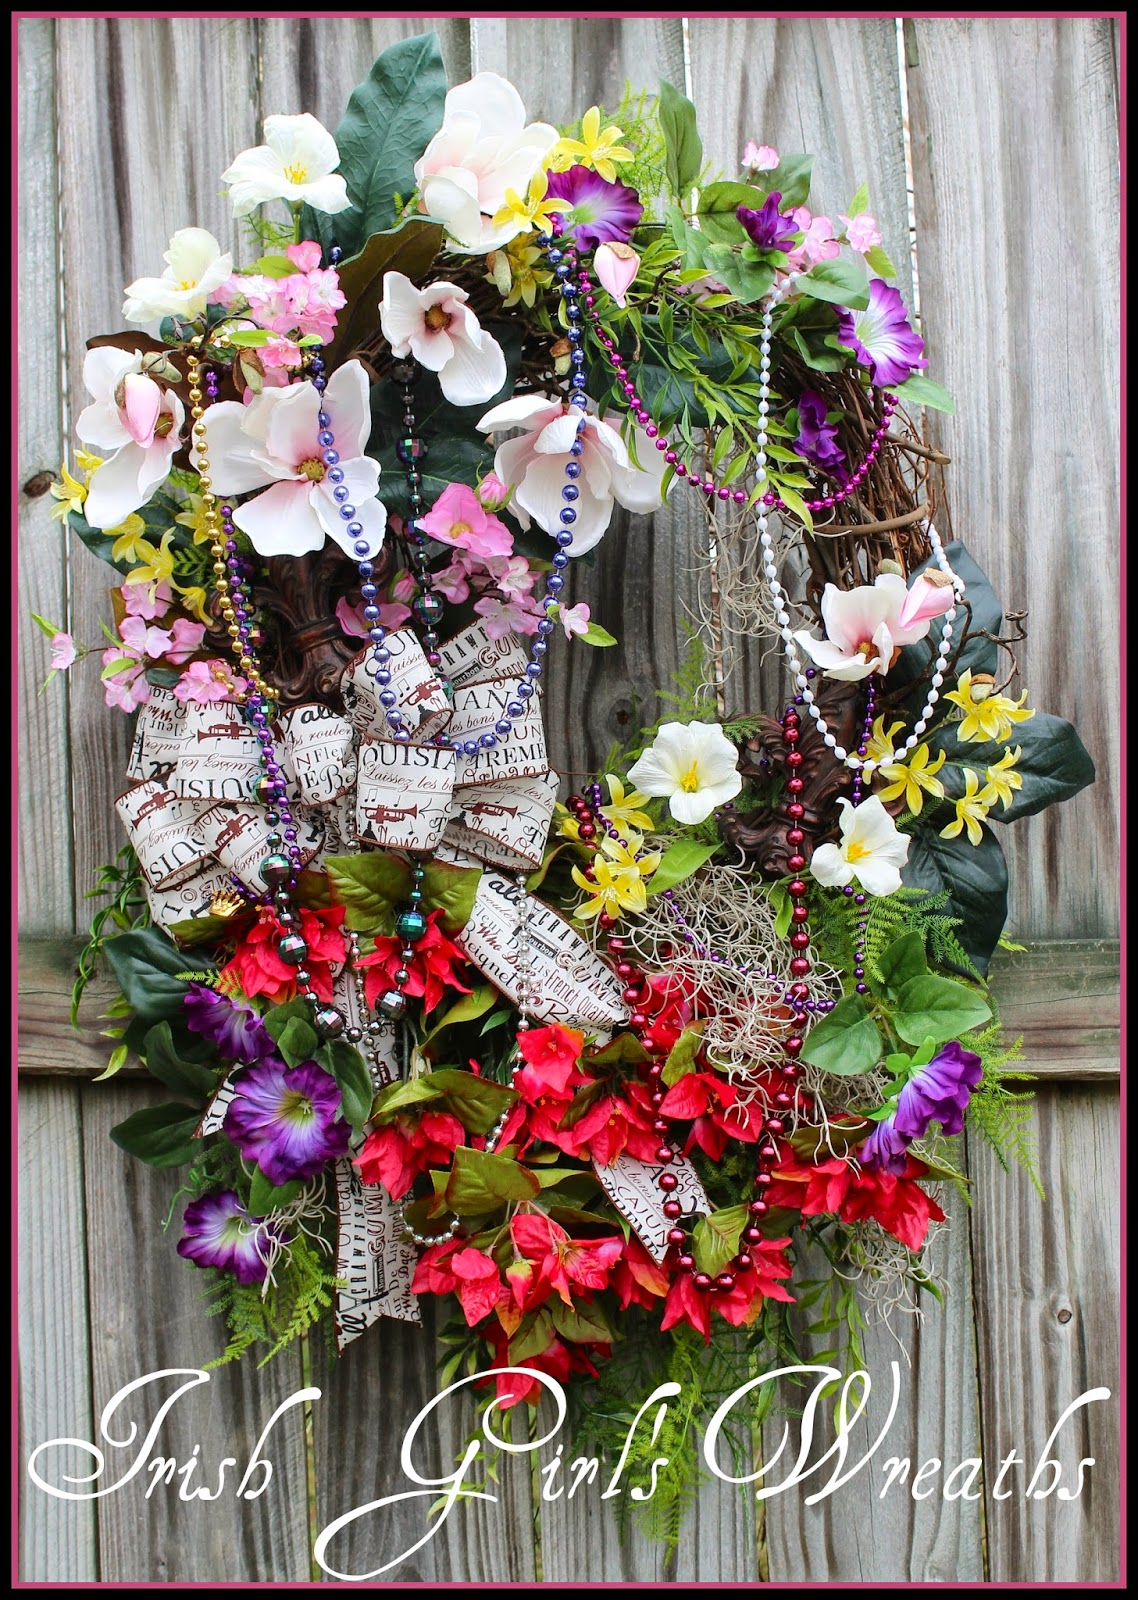 XXL New Orleans French Quarter Mardi Gras Wreath